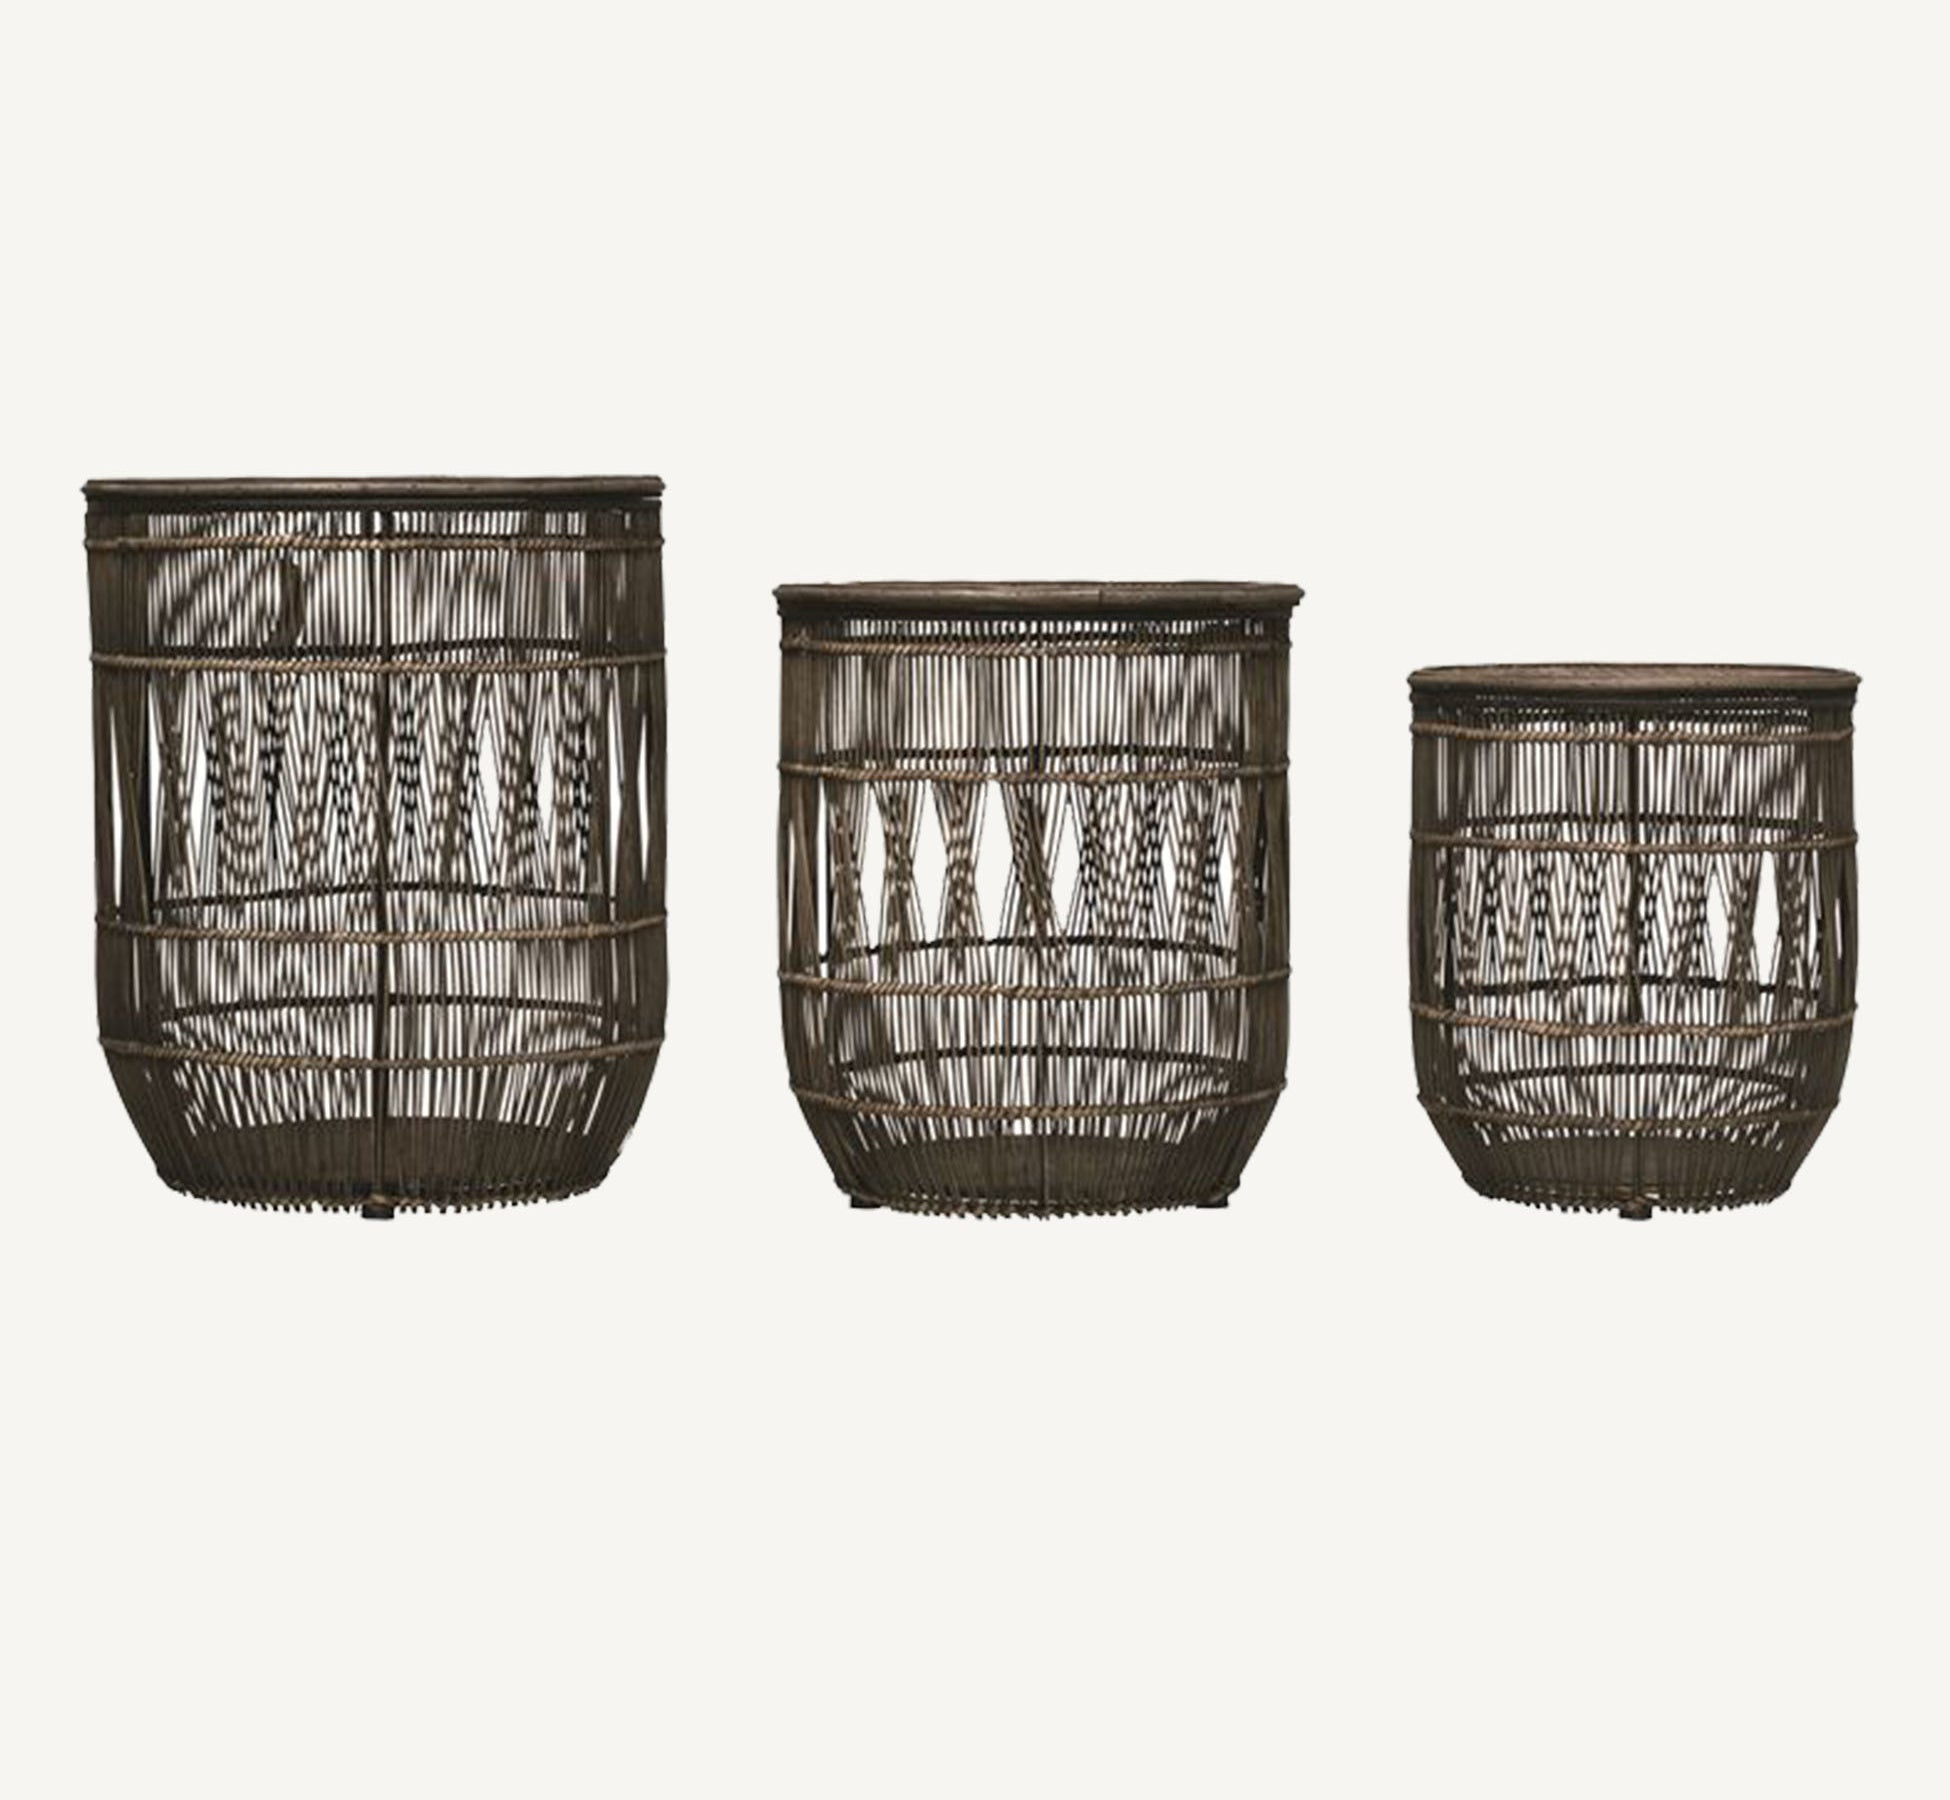 three distressed black bamboo and rattan baskets with lids